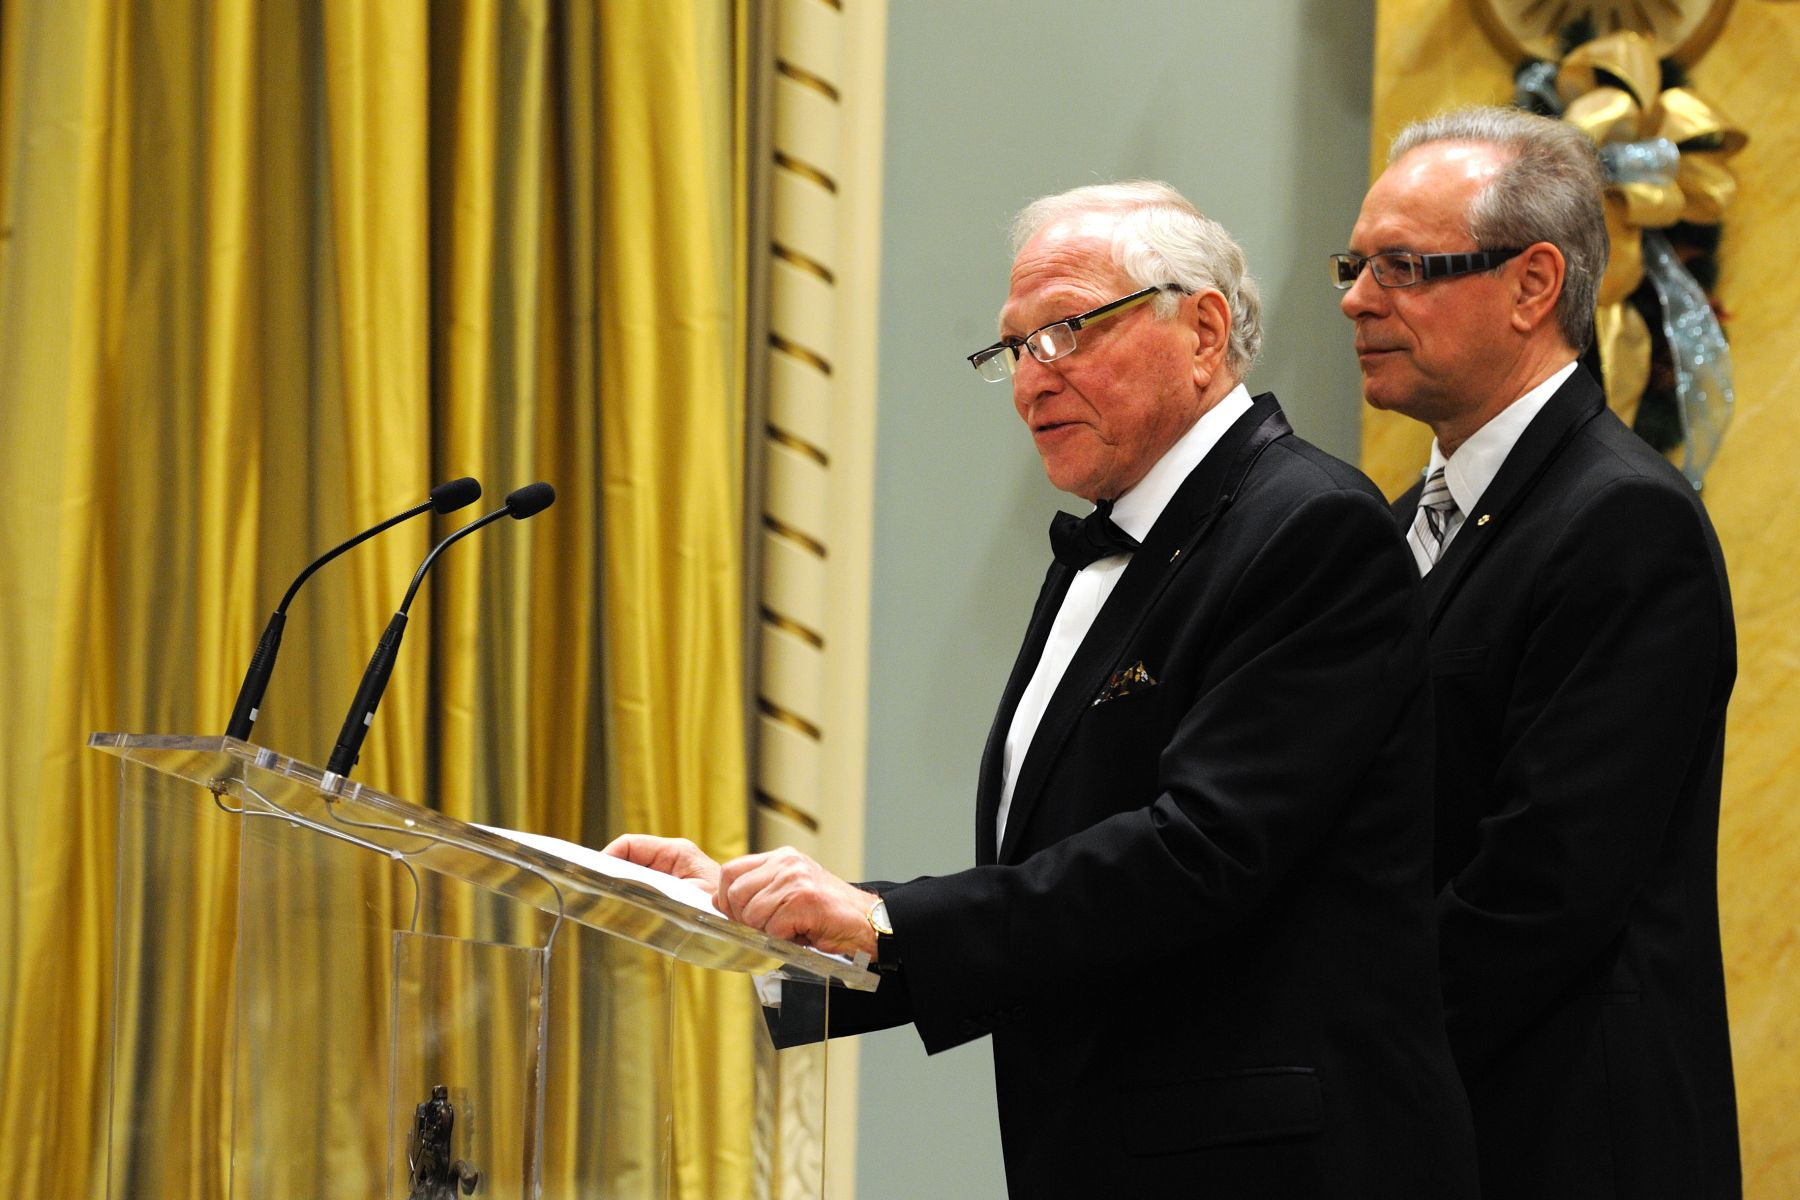 Mr. Joseph L. Rotman, Chair of the Canada Council for the Arts, and Mr. Simon Brault, Vice-Chair of the Canada Council for the Arts, congratulated the recipients of the 2010 Killam Prize, which are awarded annually for the outstanding career achievements of Canadian researchers in health sciences, engineering, humanities, natural sciences and social sciences.